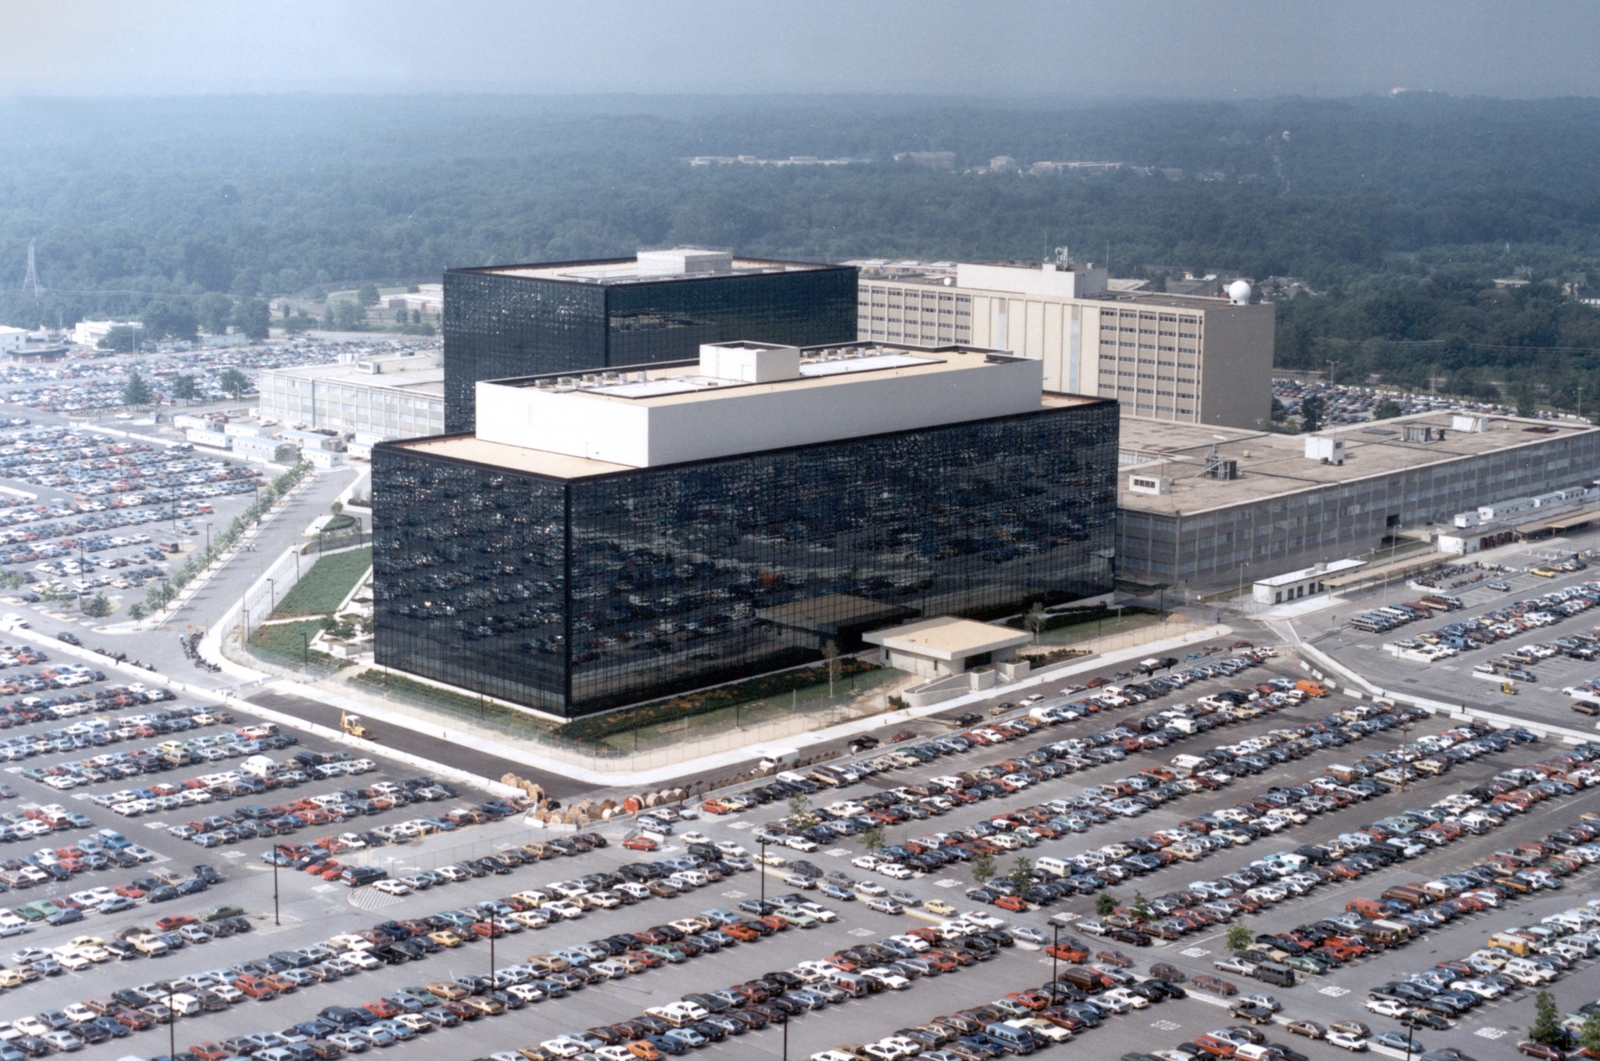 Equation group: The NSA's elite hacking squad